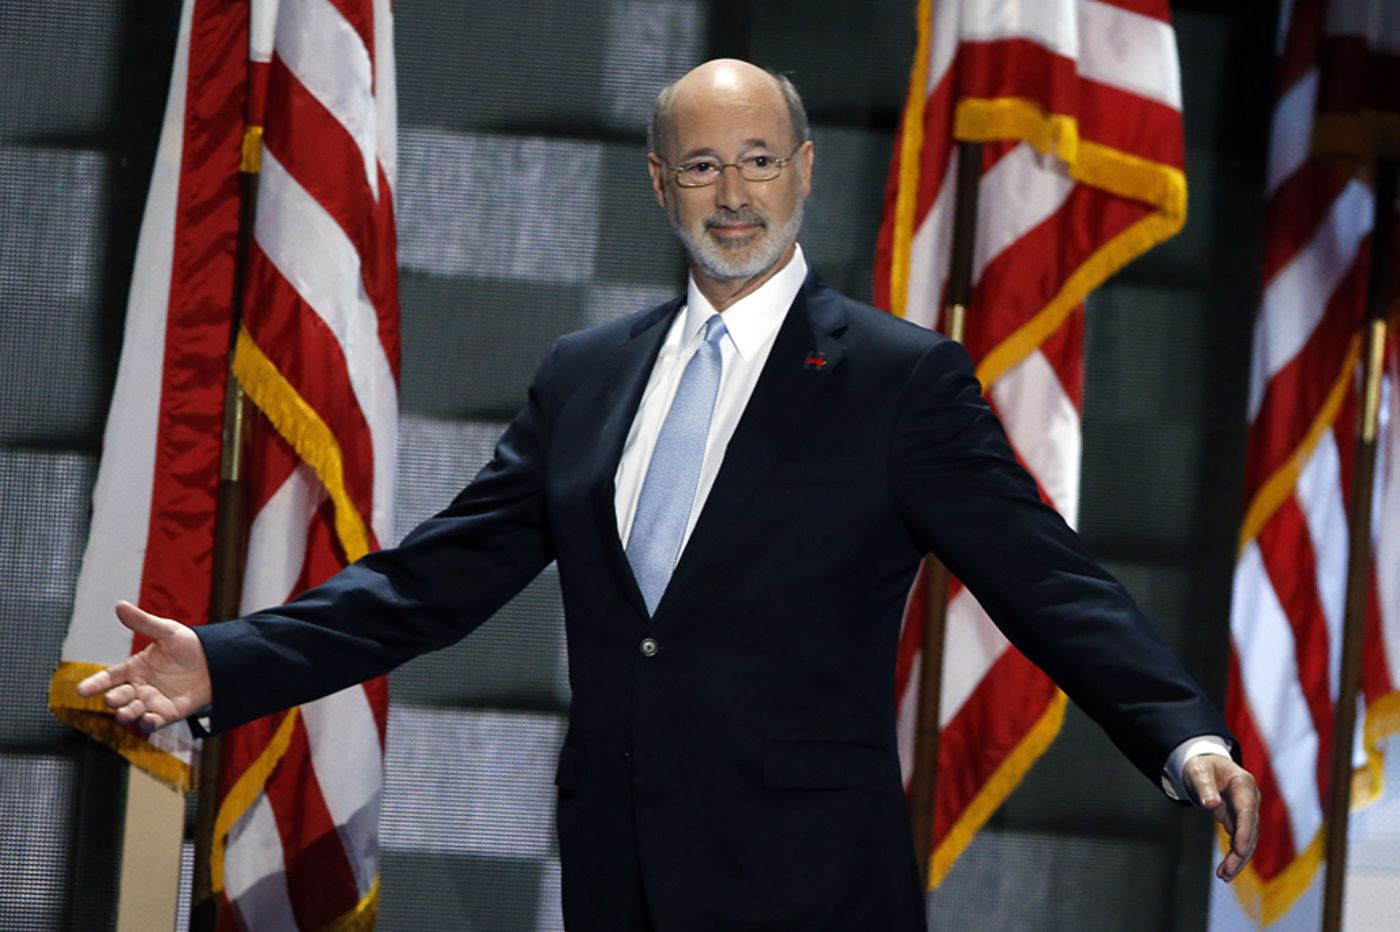 Unfettered by reelection concerns, will Gov. Tom Wolf return to progressive roots in second term?